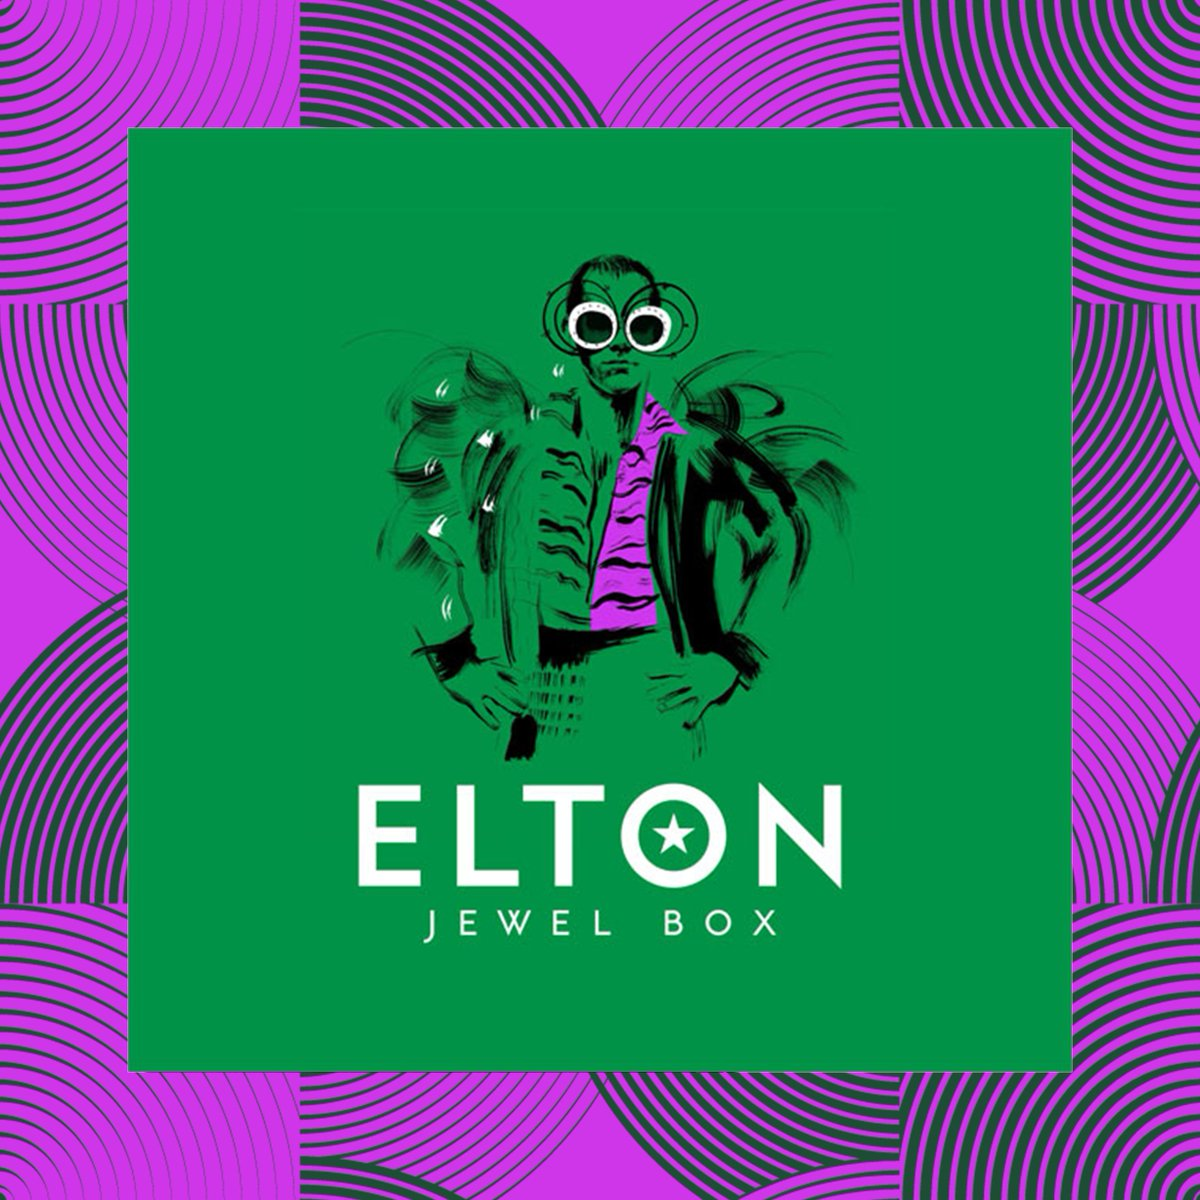 Mastered by Abbey Road's Sean Magee, @EltonOfficial delves deep into his archive for a new 8CD box set titled 'Elton: Jewel Box', which features an astonishing amount of rarities, deep cuts and B-sides. Discover: https://t.co/wzjskeS9r6 https://t.co/TQoeoe5IUr